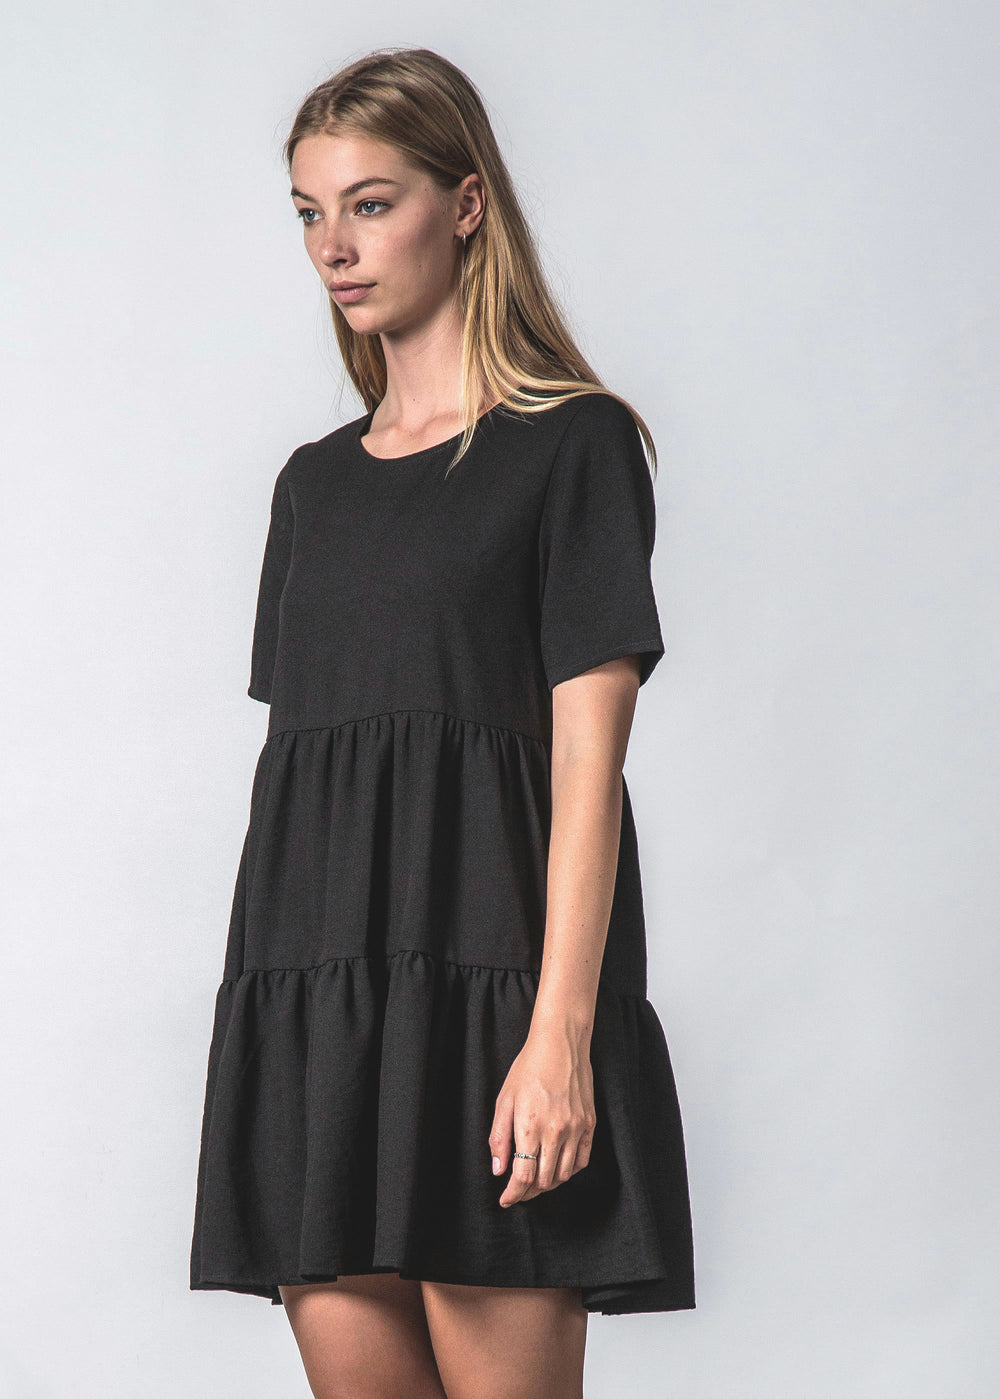 UNDERCOVER DRESS DRAPEY BLACK